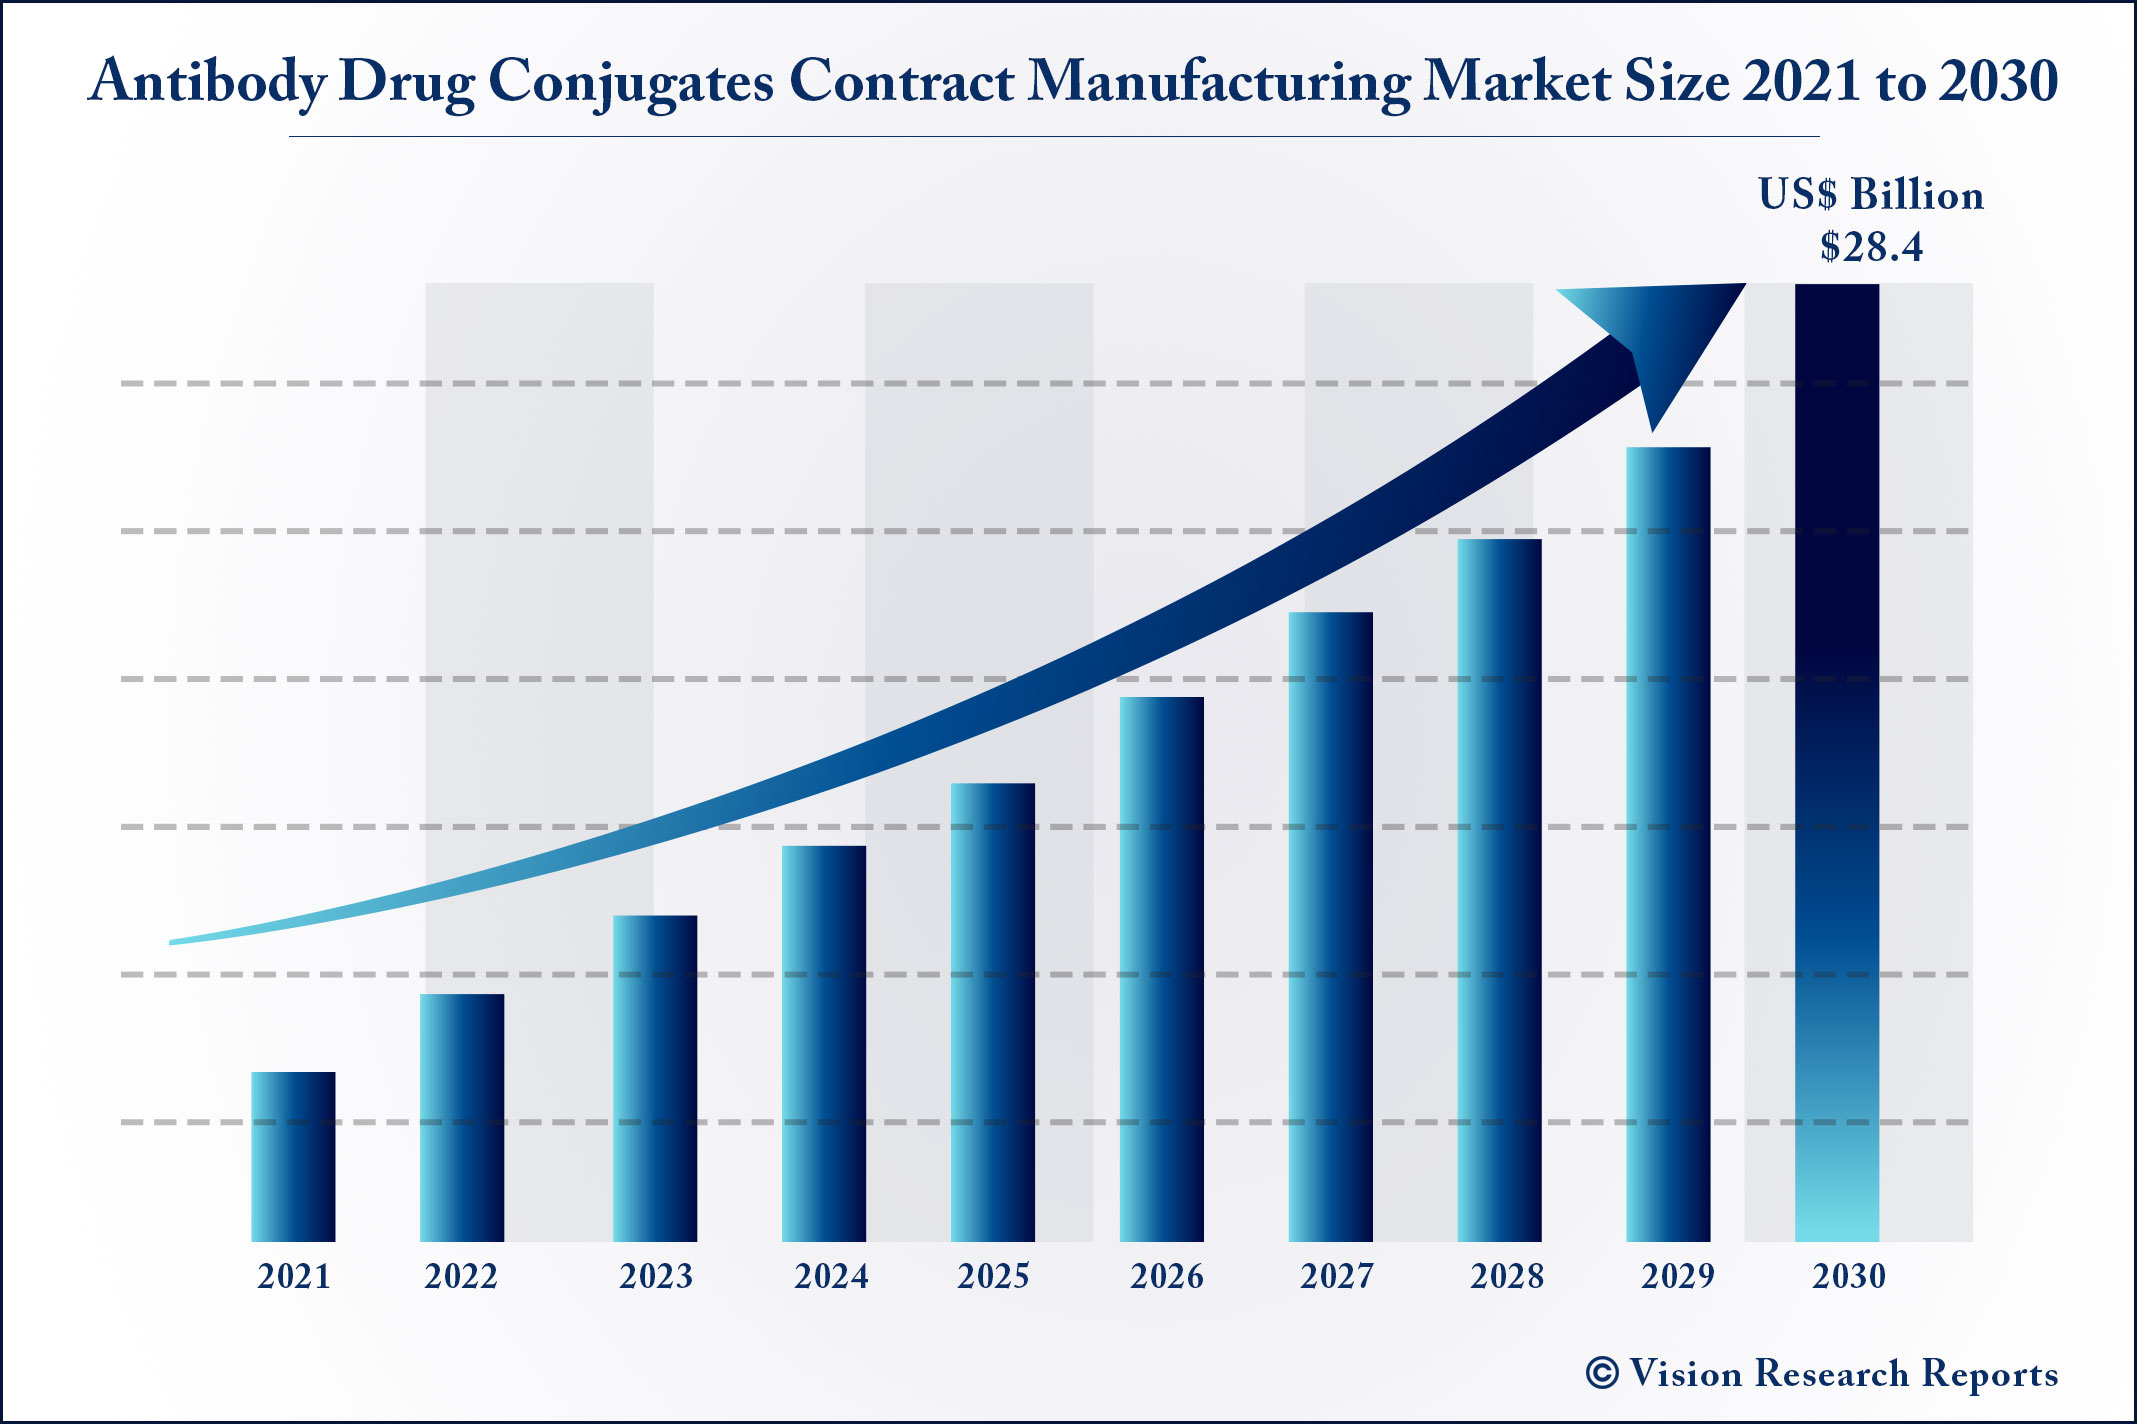 Antibody Drug Conjugates Contract Manufacturing Market Size 2021 to 2030